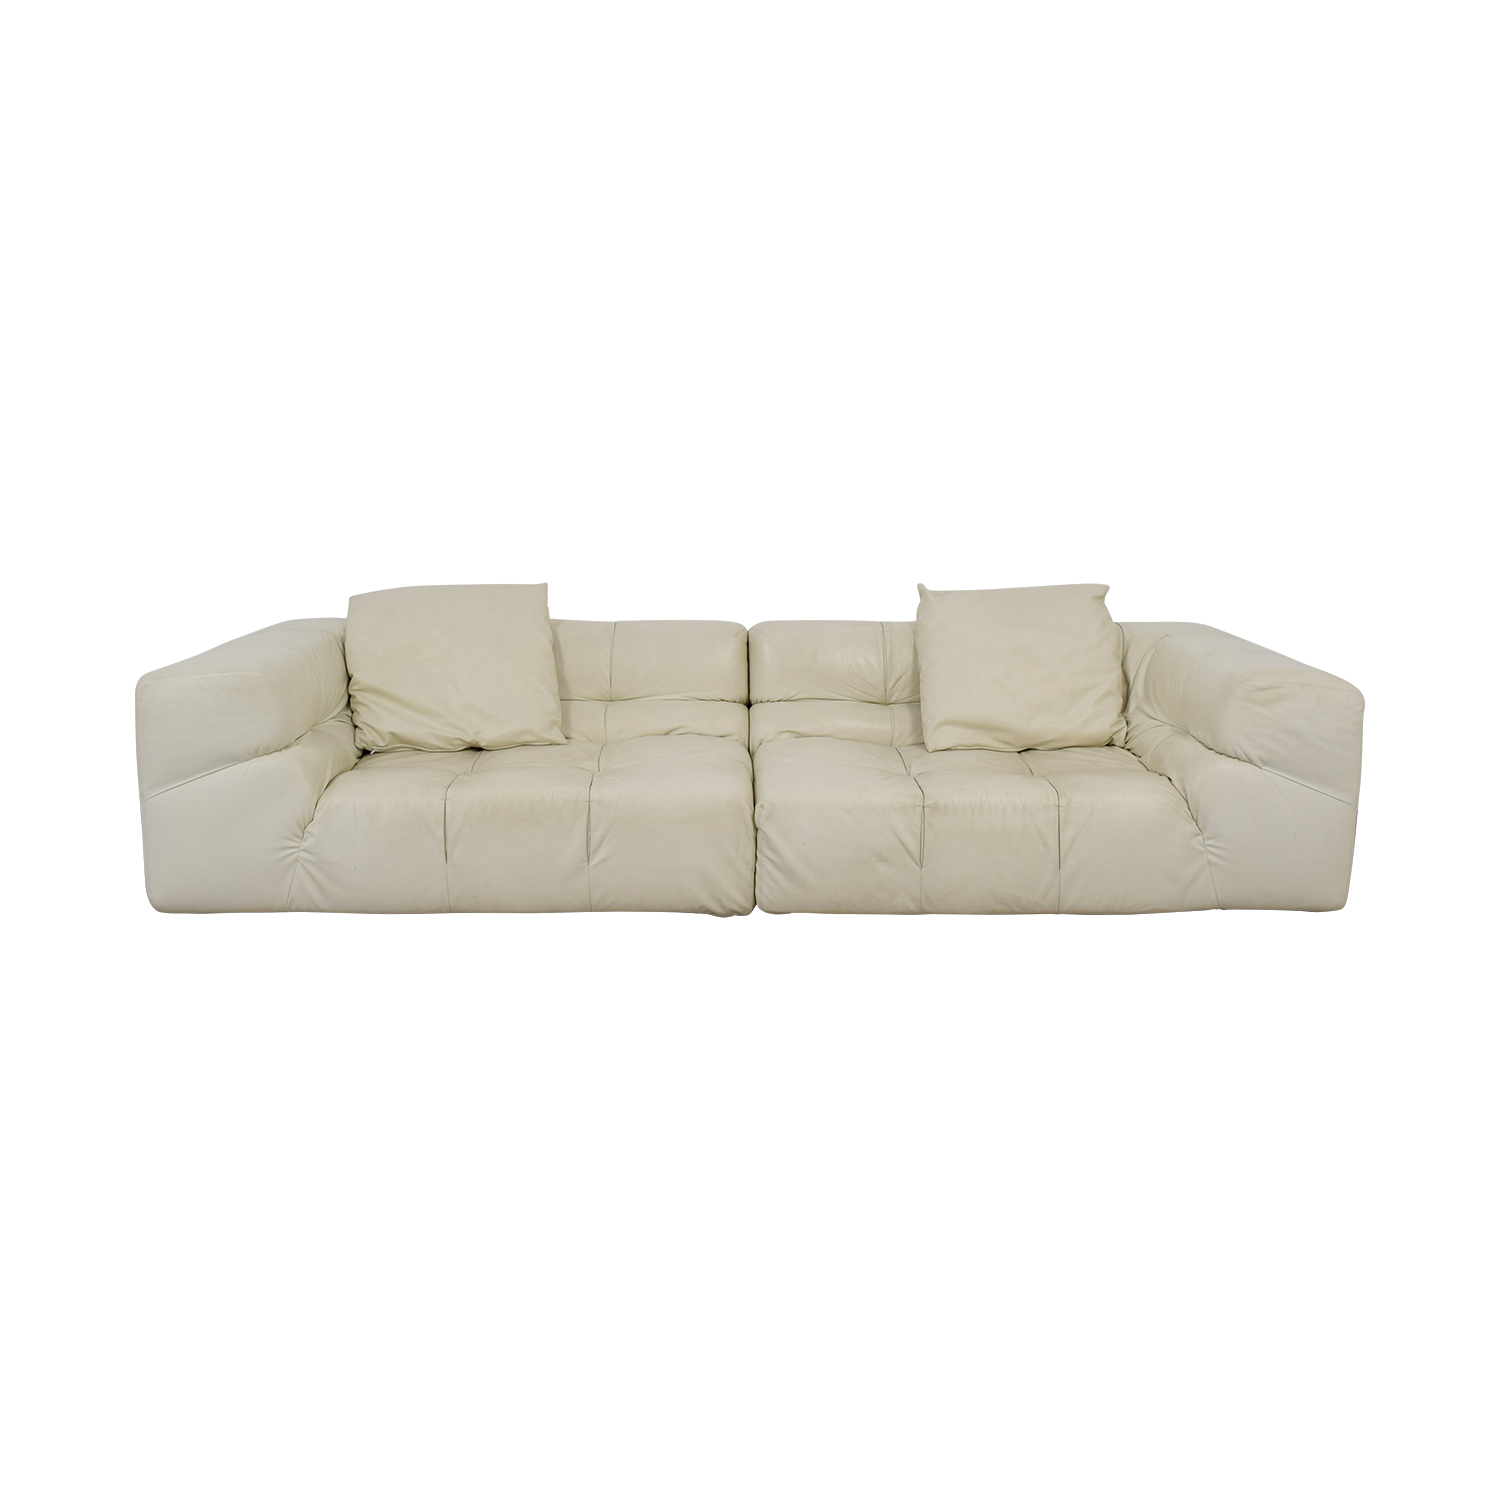 Ligne Roset Sofa 52 Off Ligne Roset Ligne Roset White Tufted Leather Couch Sofas